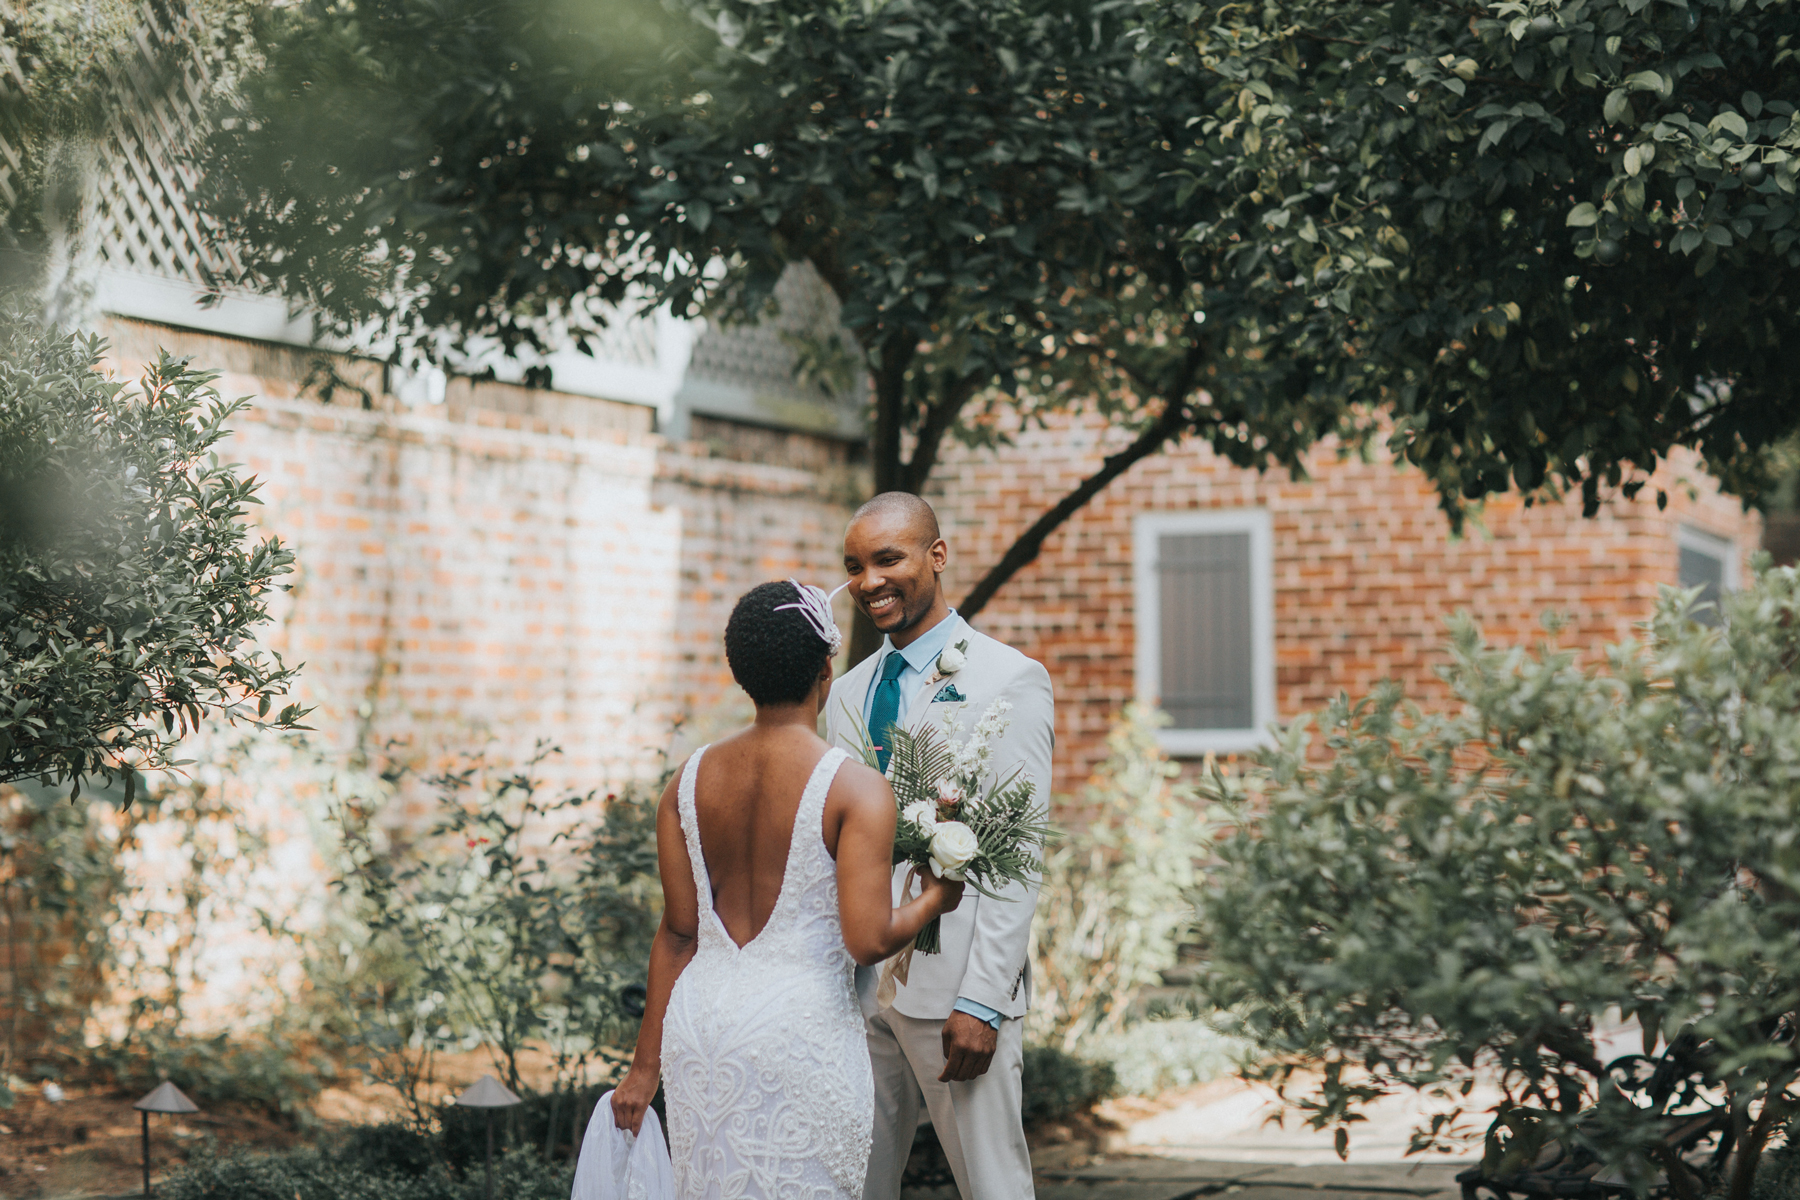 bride and groom sharing first look in courtyard